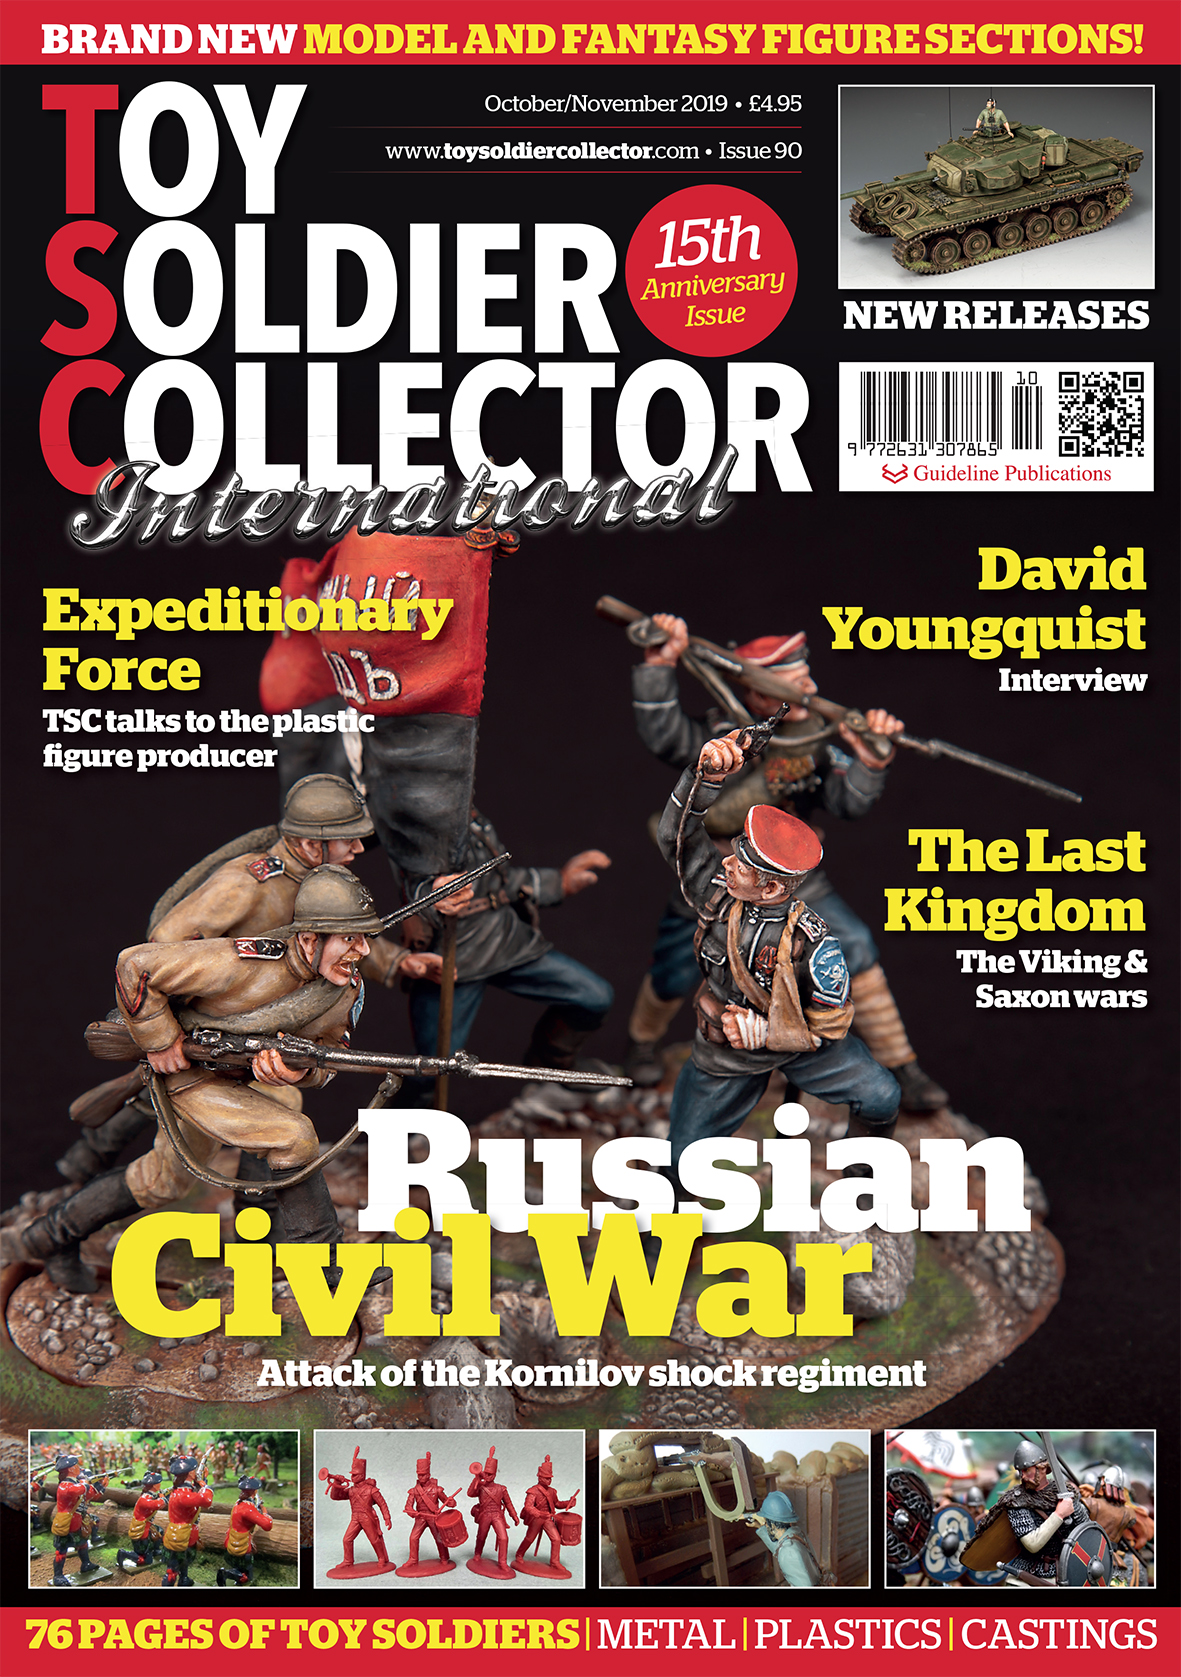 Guideline Publications Toy Soldier Collector #90 Oct/Nov Issue 90